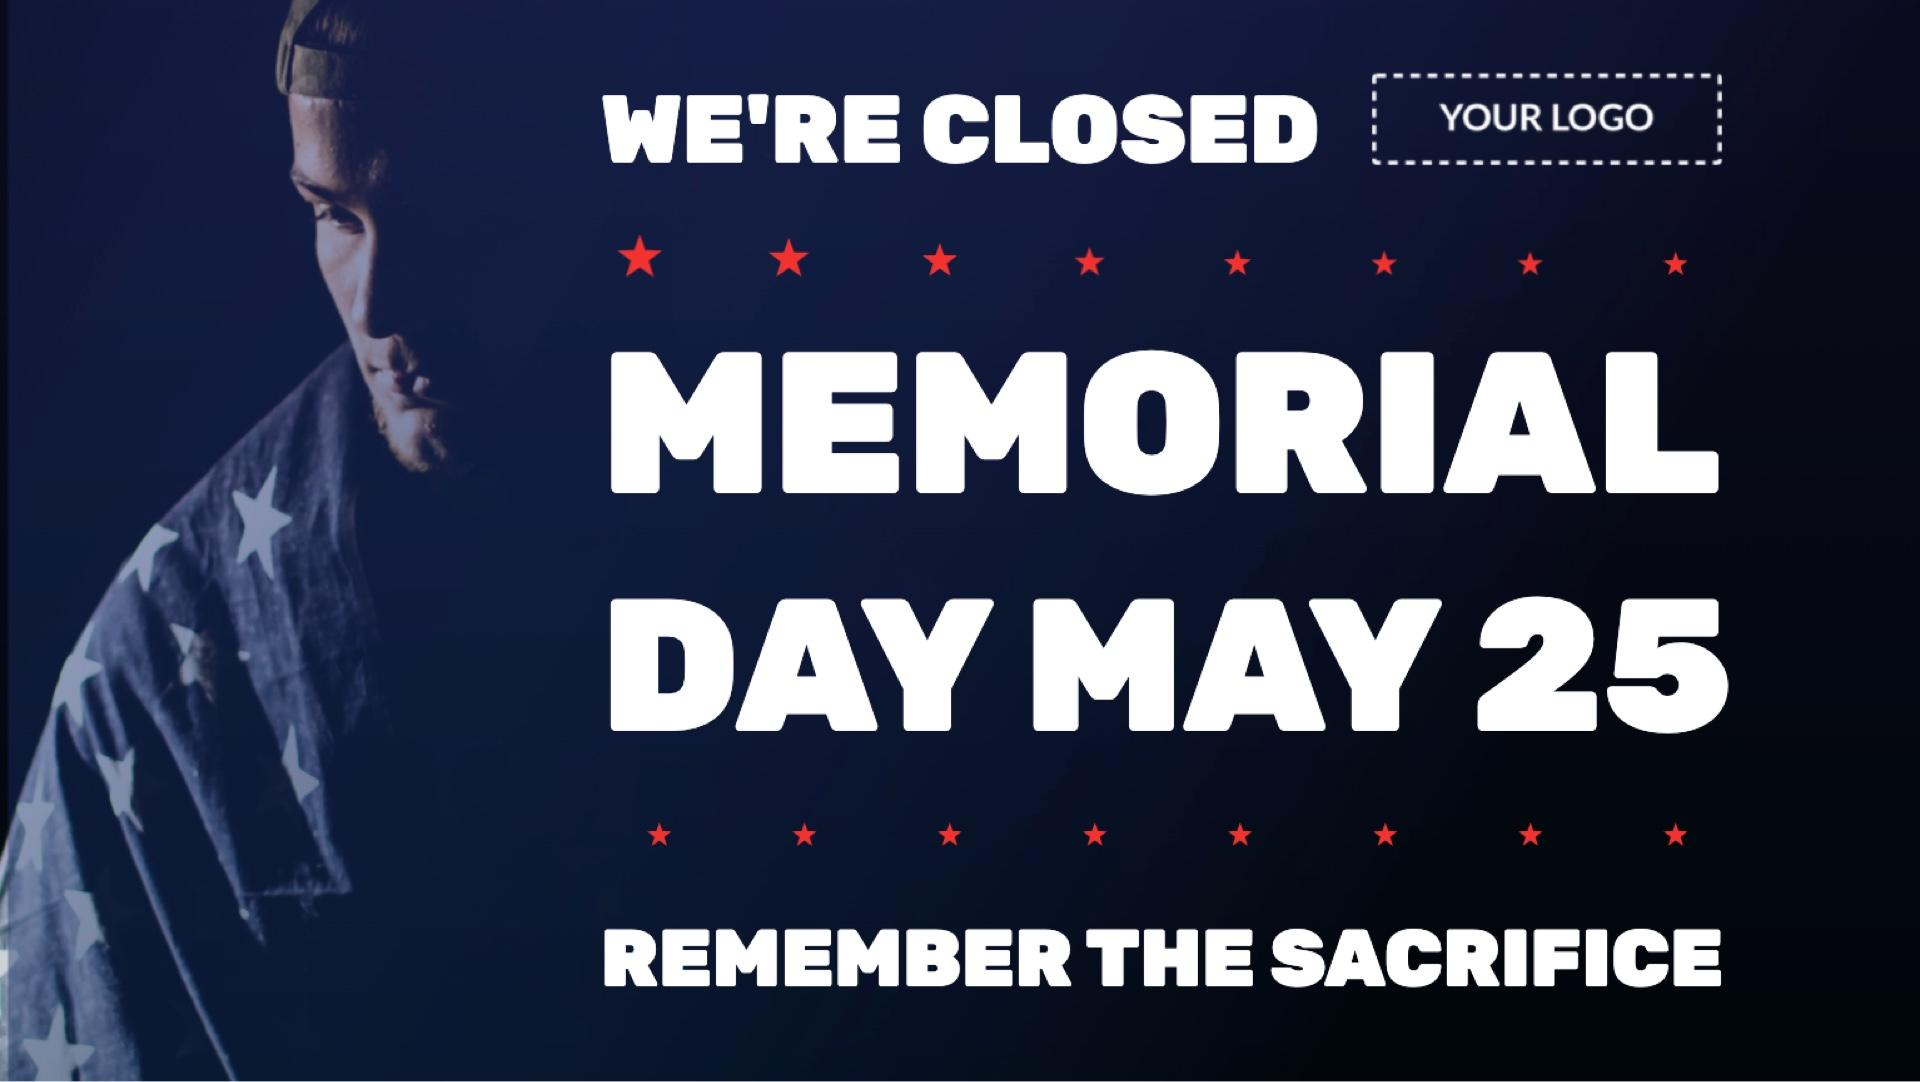 Holiday Memorial Day Digital Signage Template